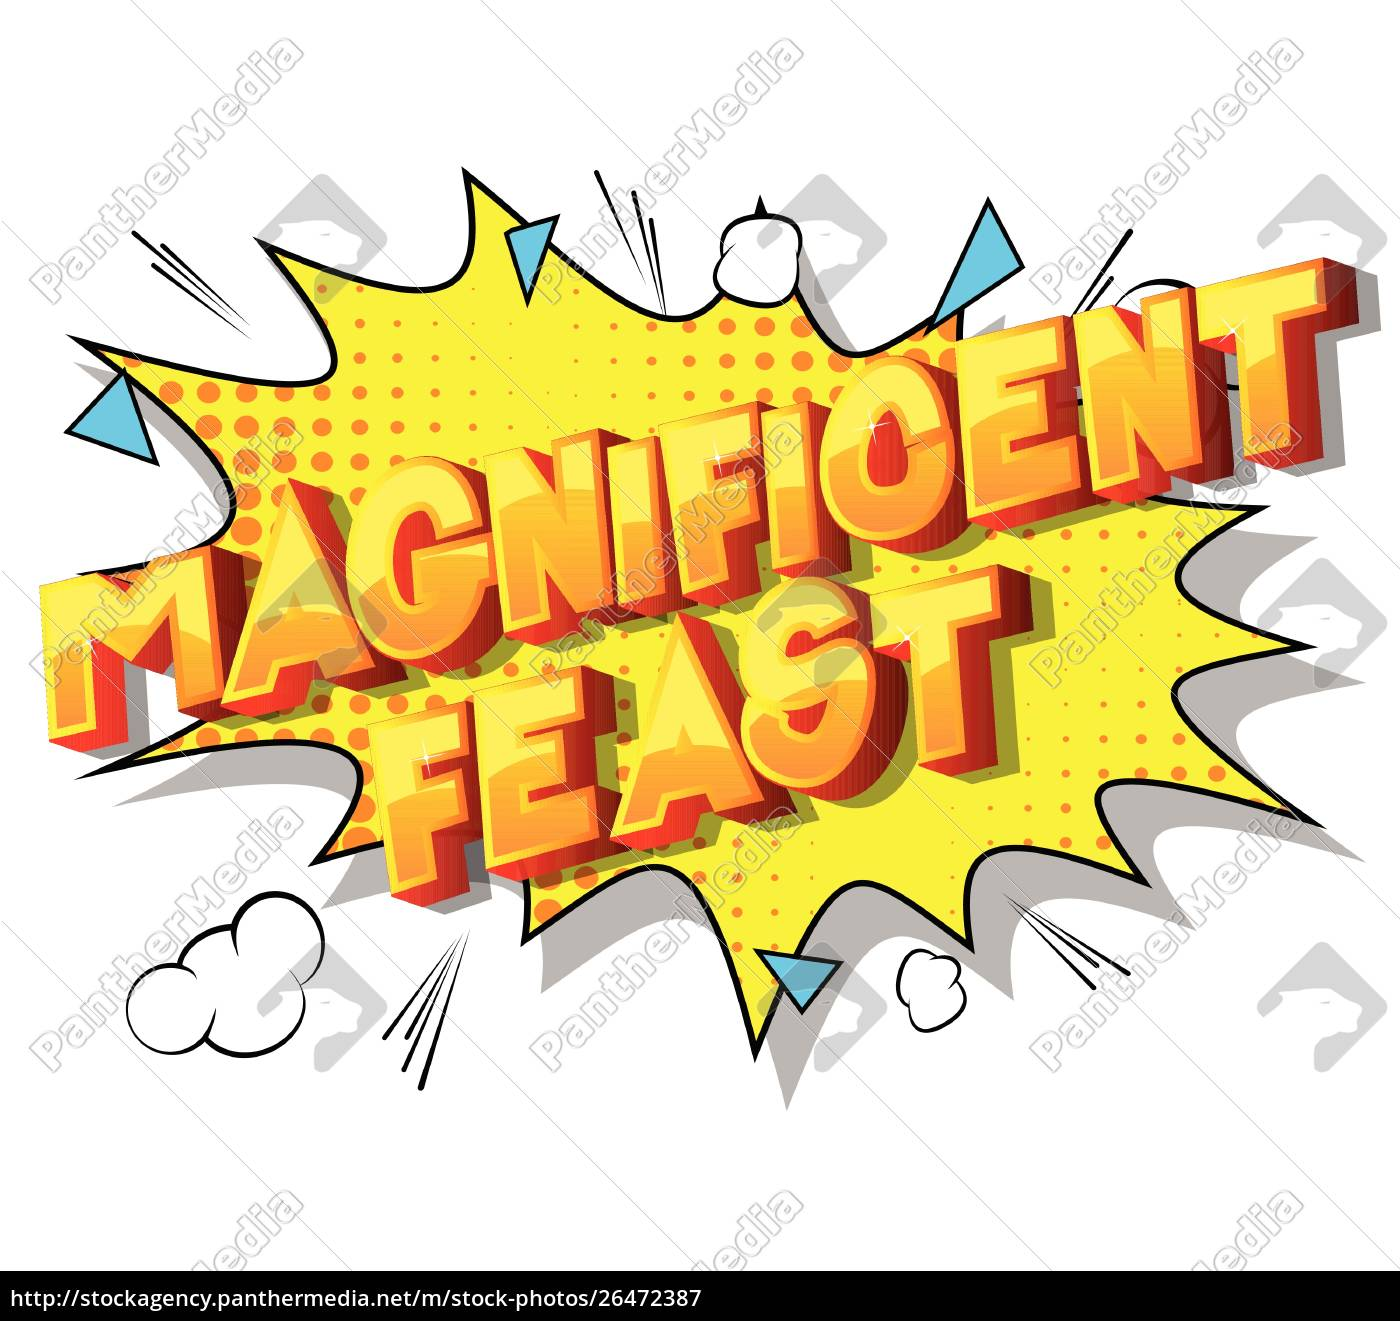 magnificent, feast, -, comic, book, style - 26472387